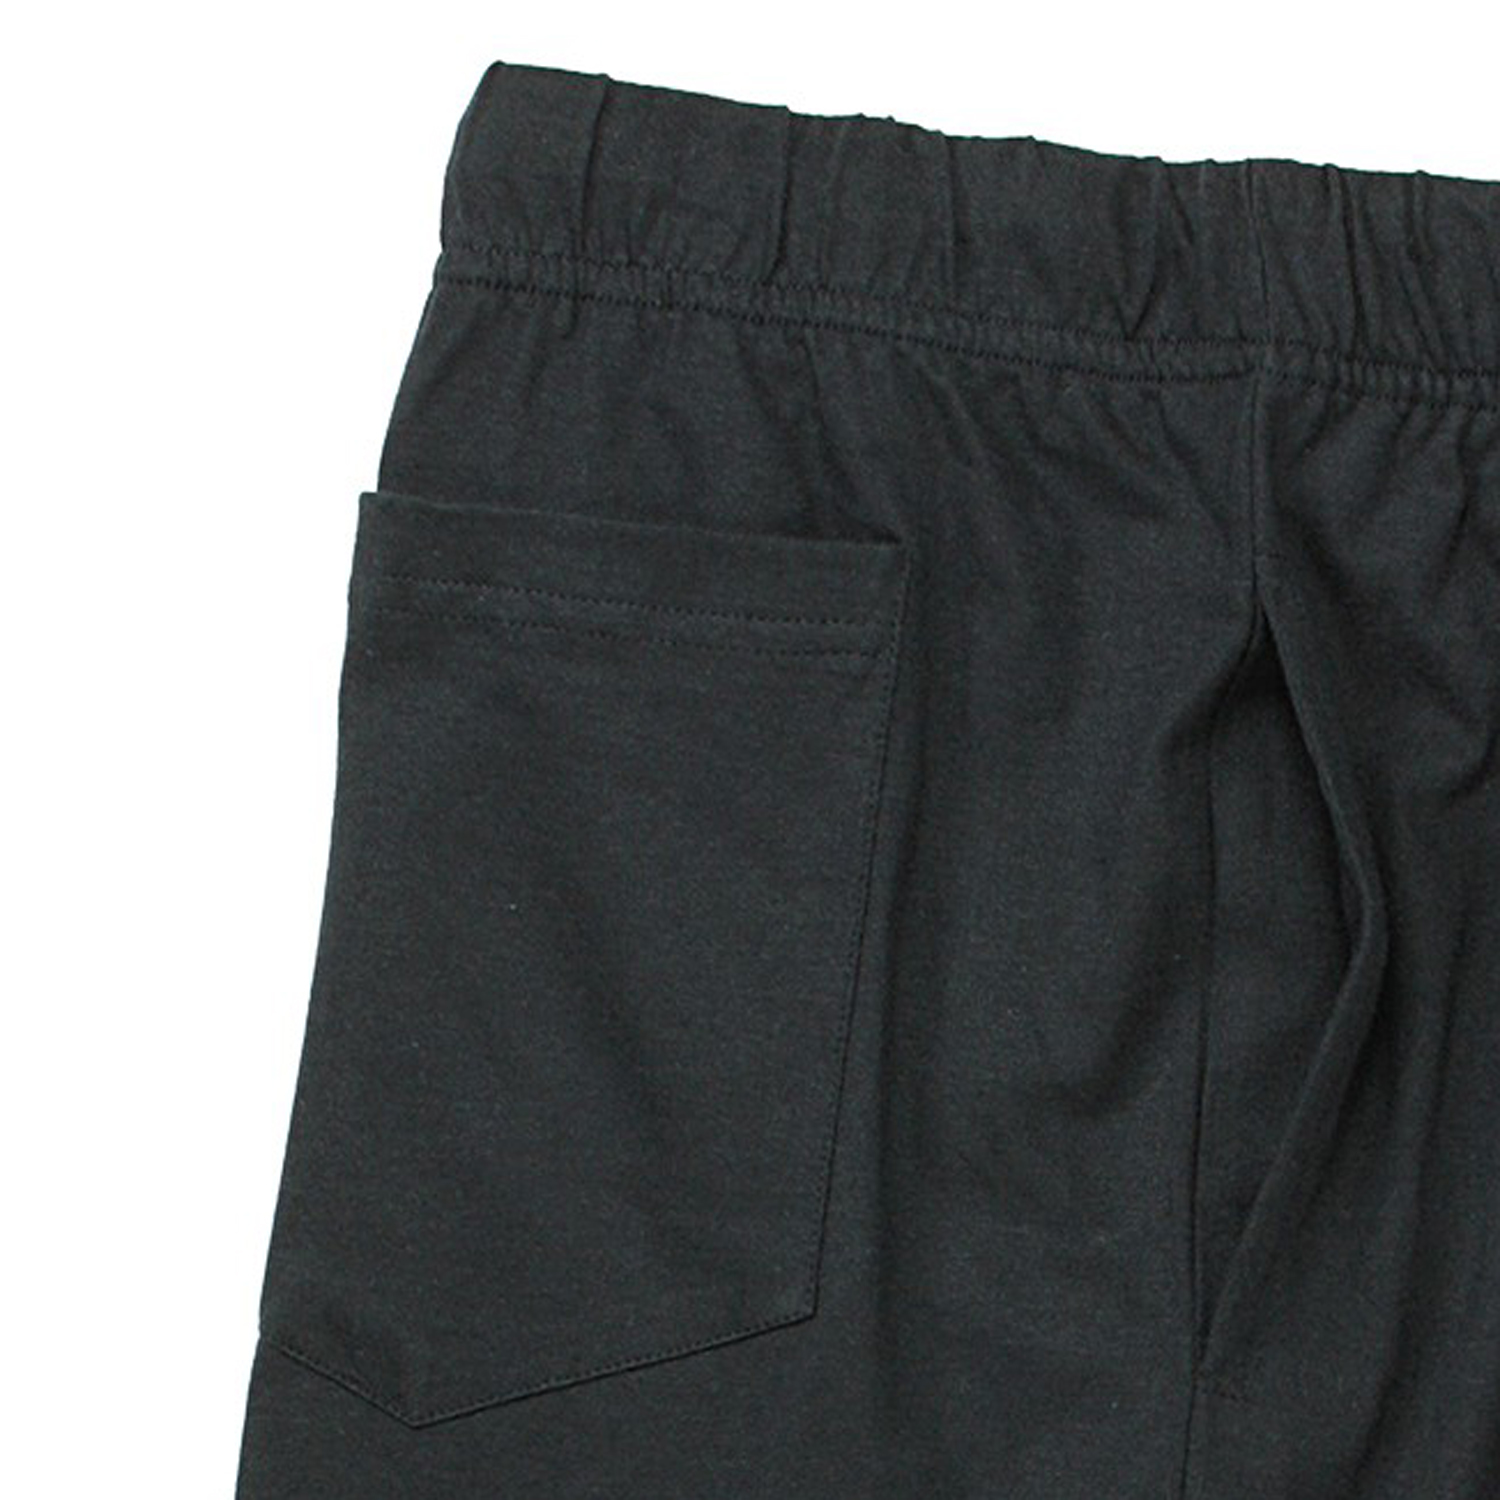 Detail Image to Short sleep pants in oversizes by ADAMO dark blue up to 9XL